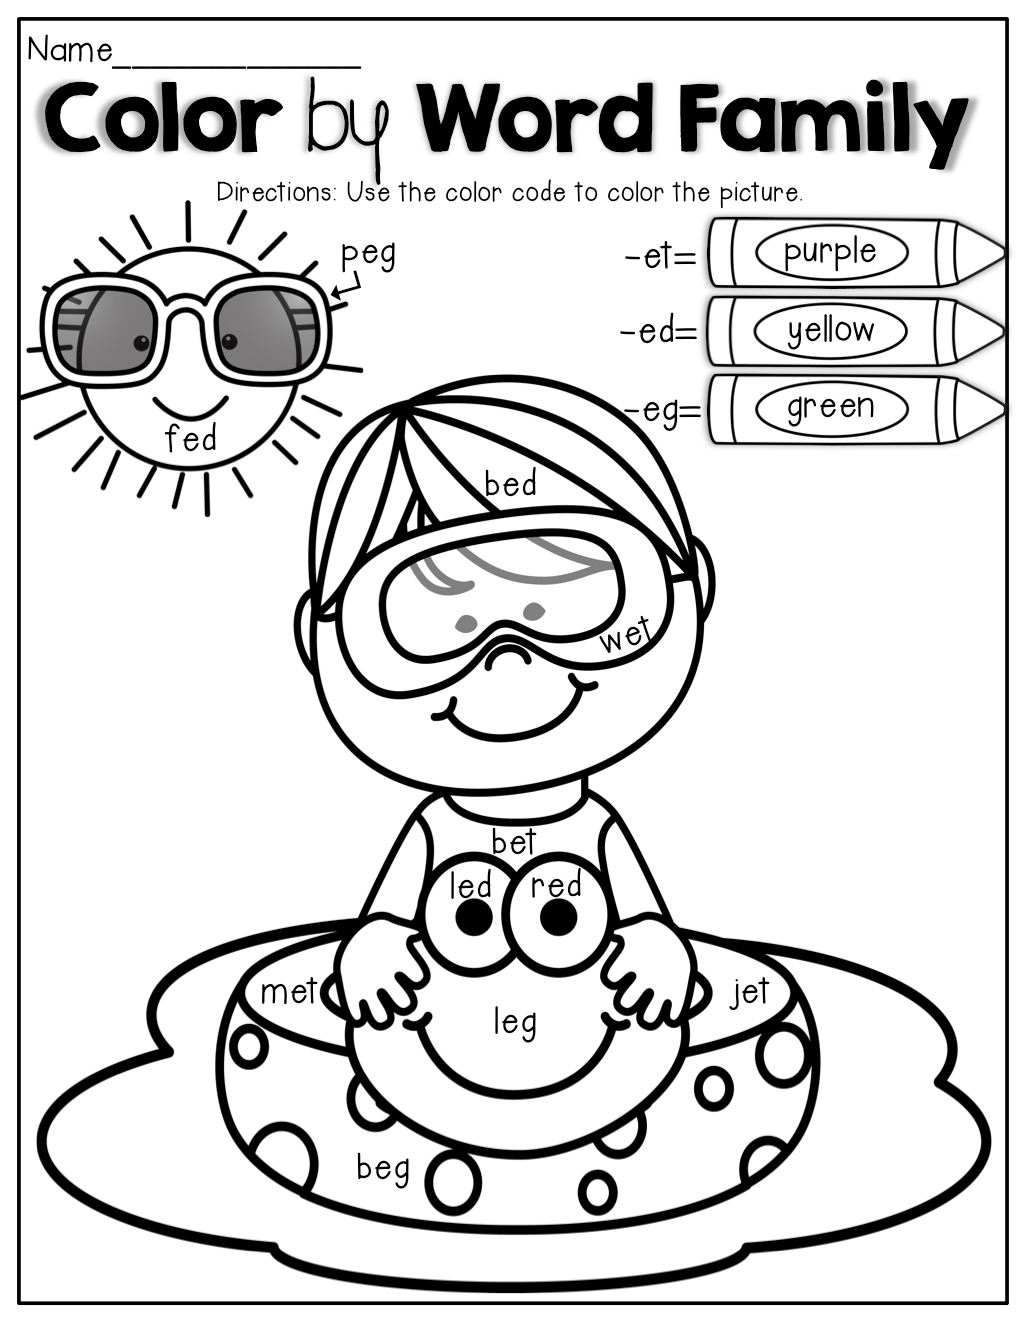 Color By Word Family An Educational Coloring Book That